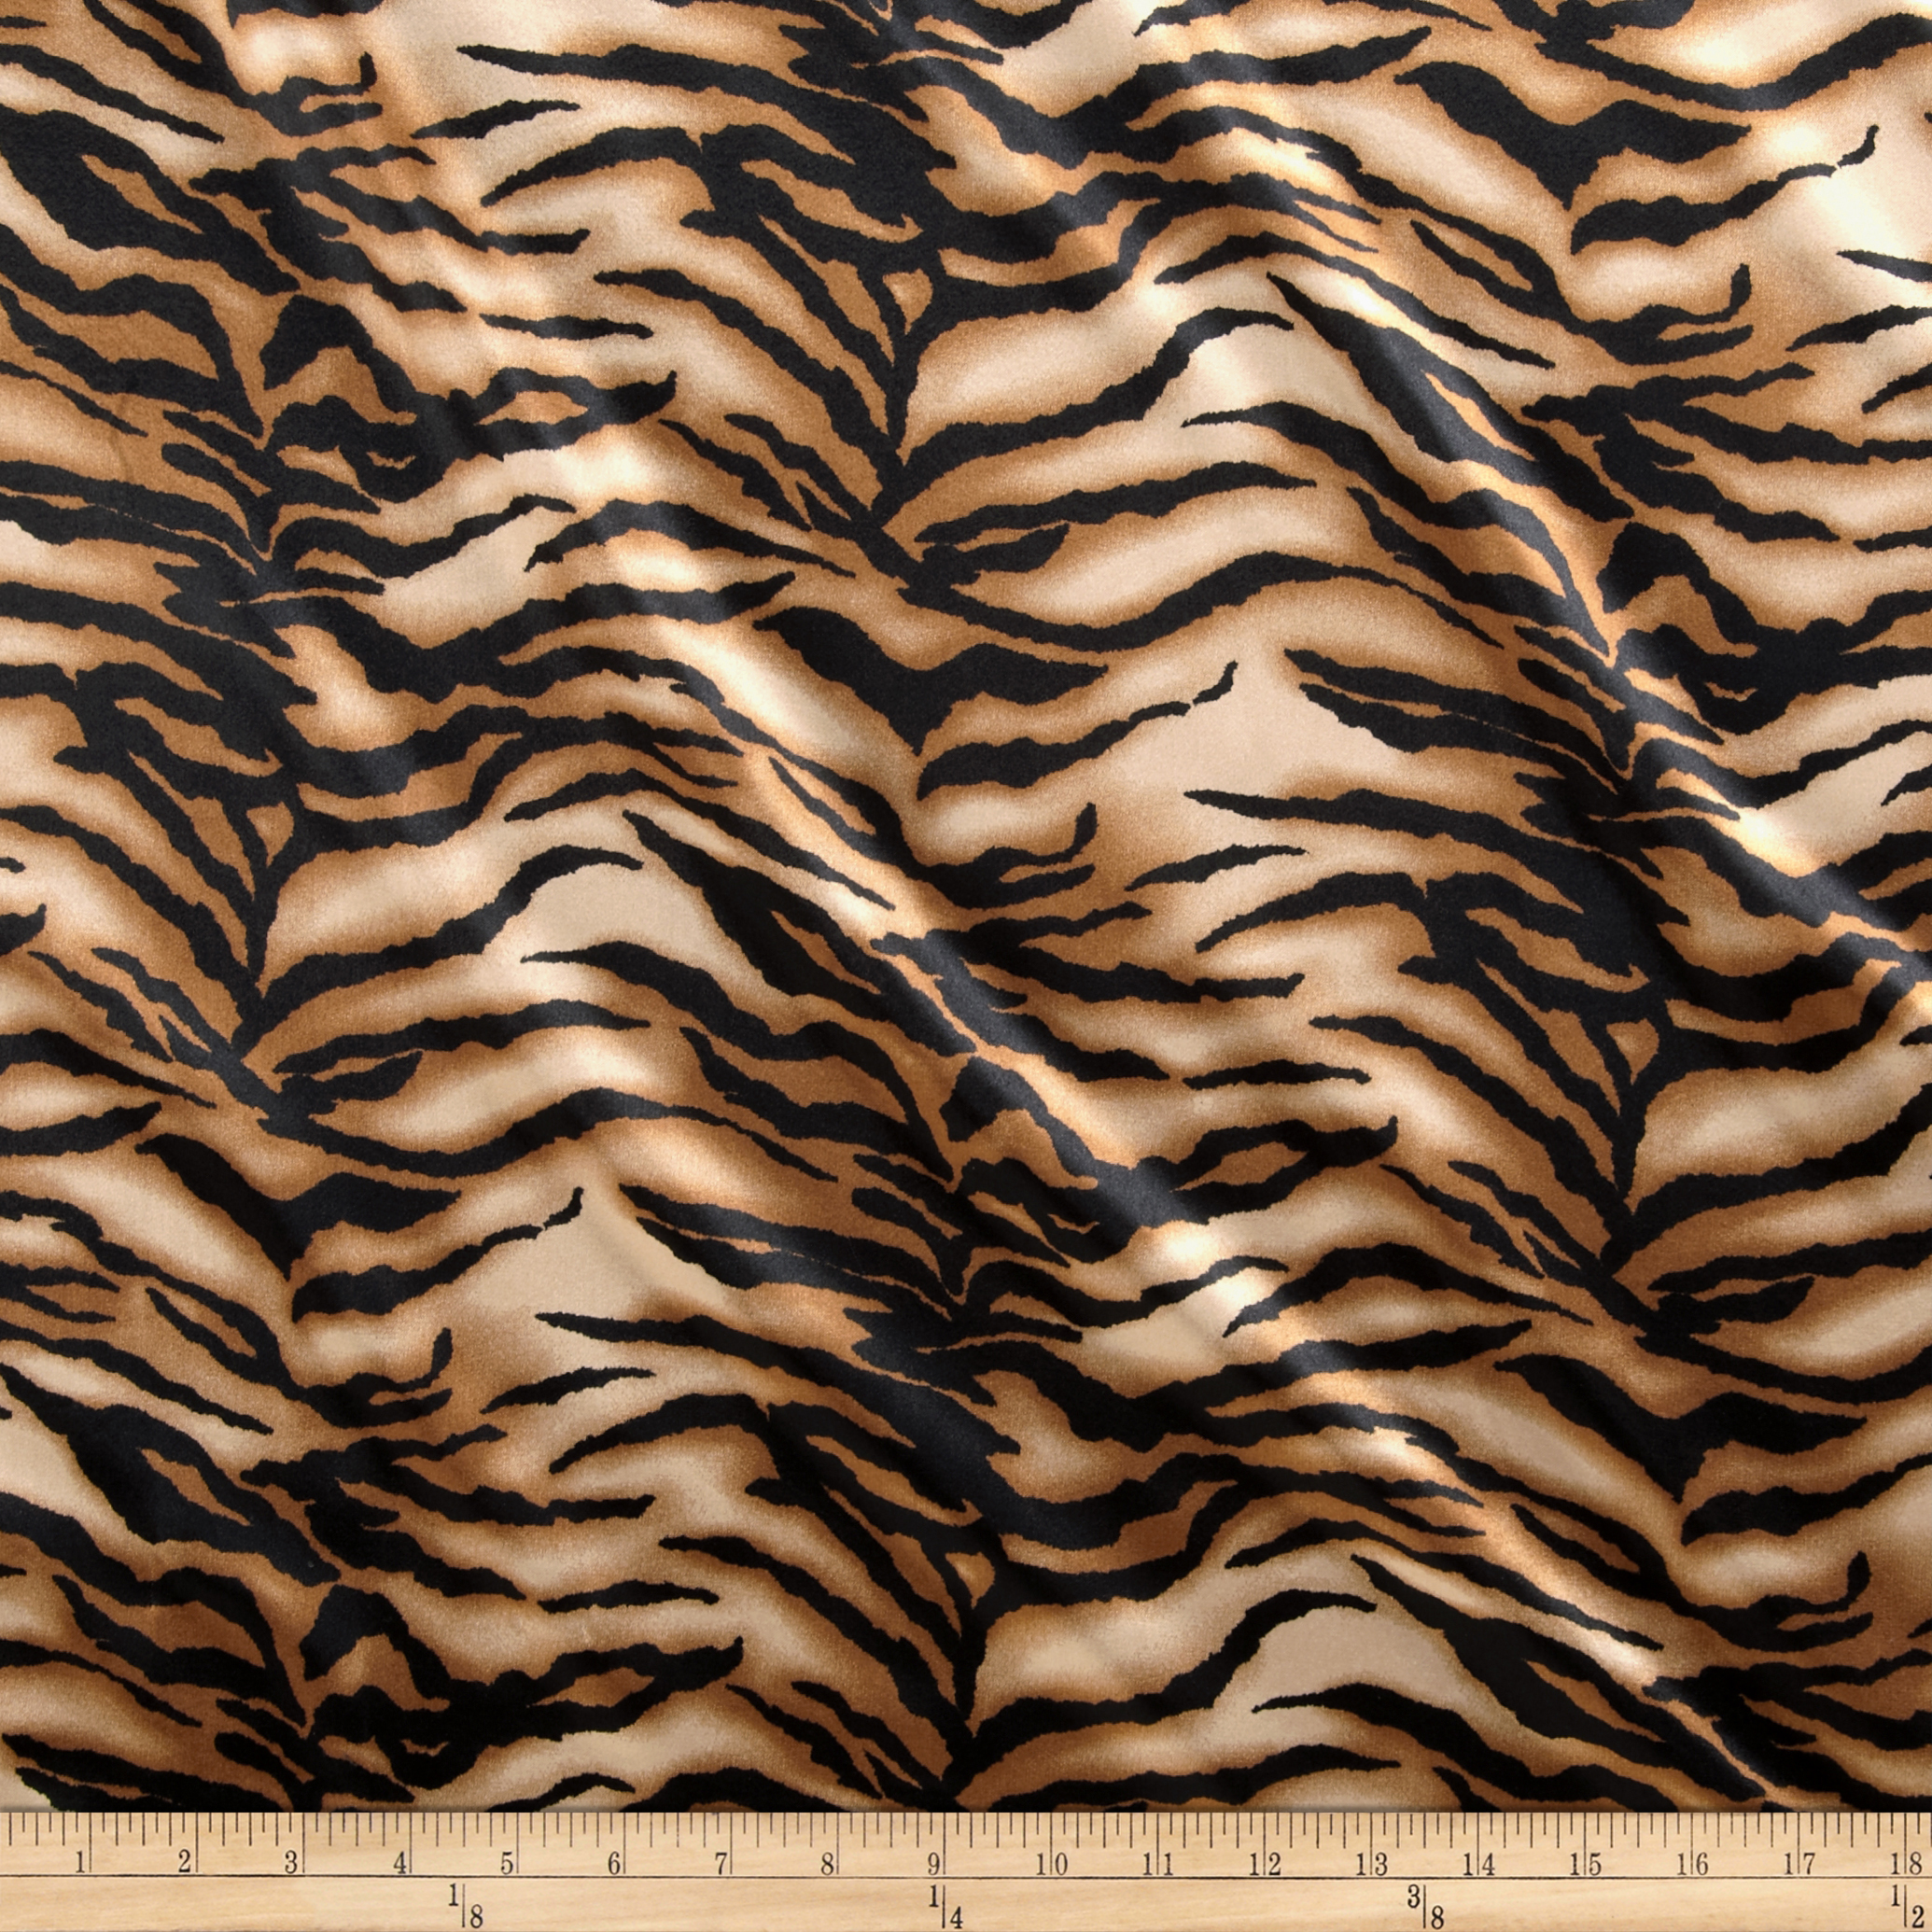 Charmeuse Satin Baby Tiger Gold/Black Fabric